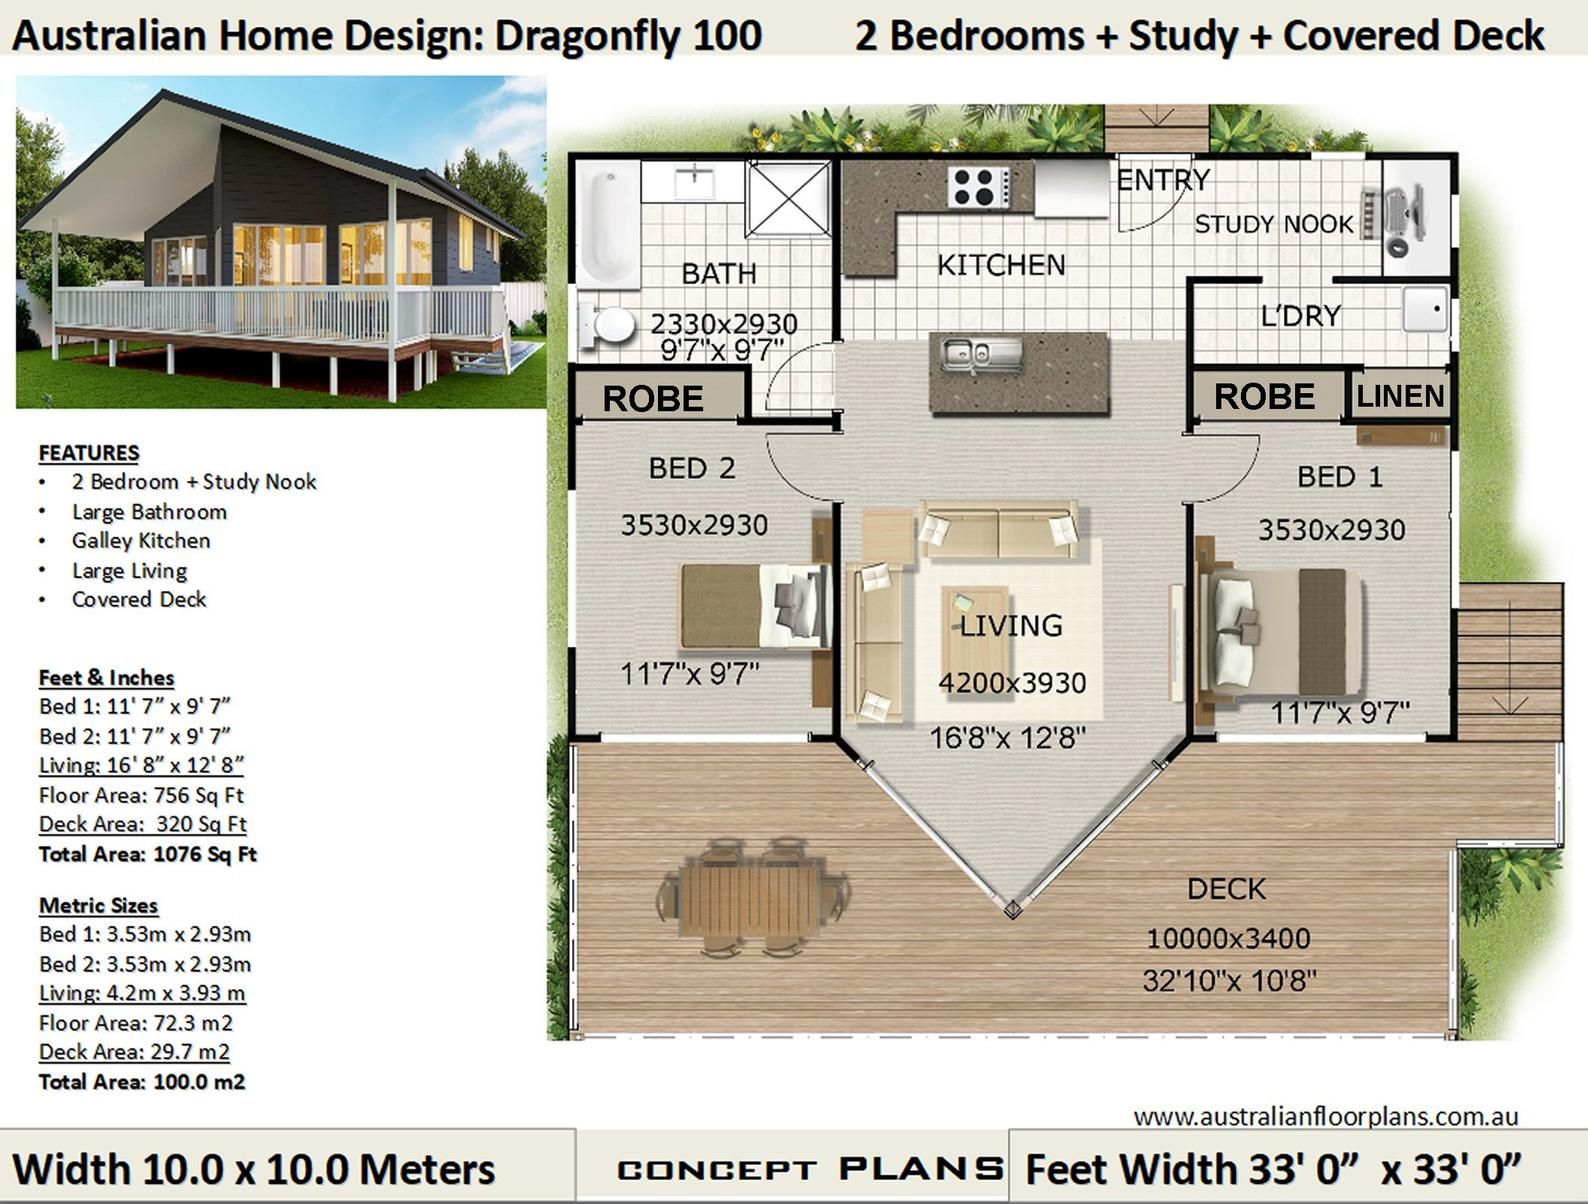 Diy Granny Flat 2 Bed Study Small Home Design Kit Home Plans On Timber Floor 100m2 Or 1076 Sq Foot Buy Floor Plans Online Here Small House Log Cabin Floor Plans Buying Flooring